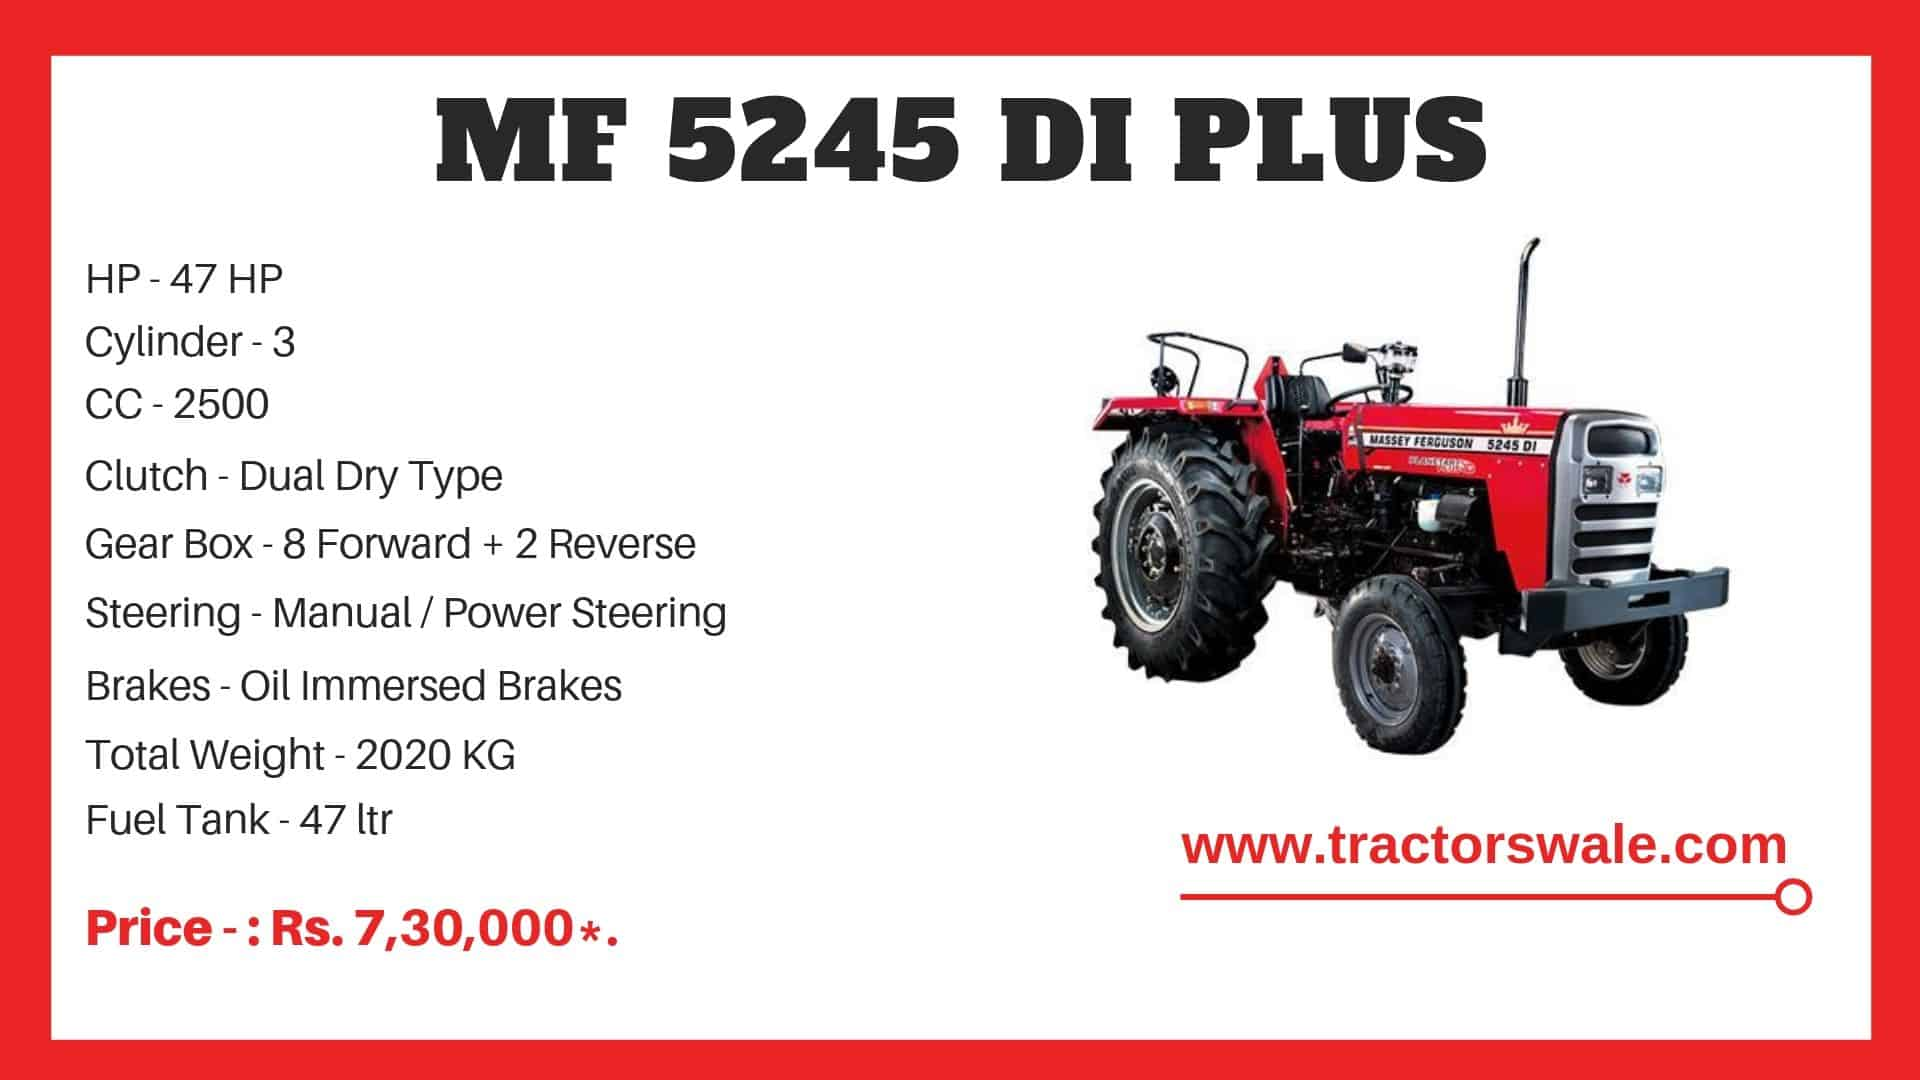 Specifications Of Massey Ferguson 5245 DI